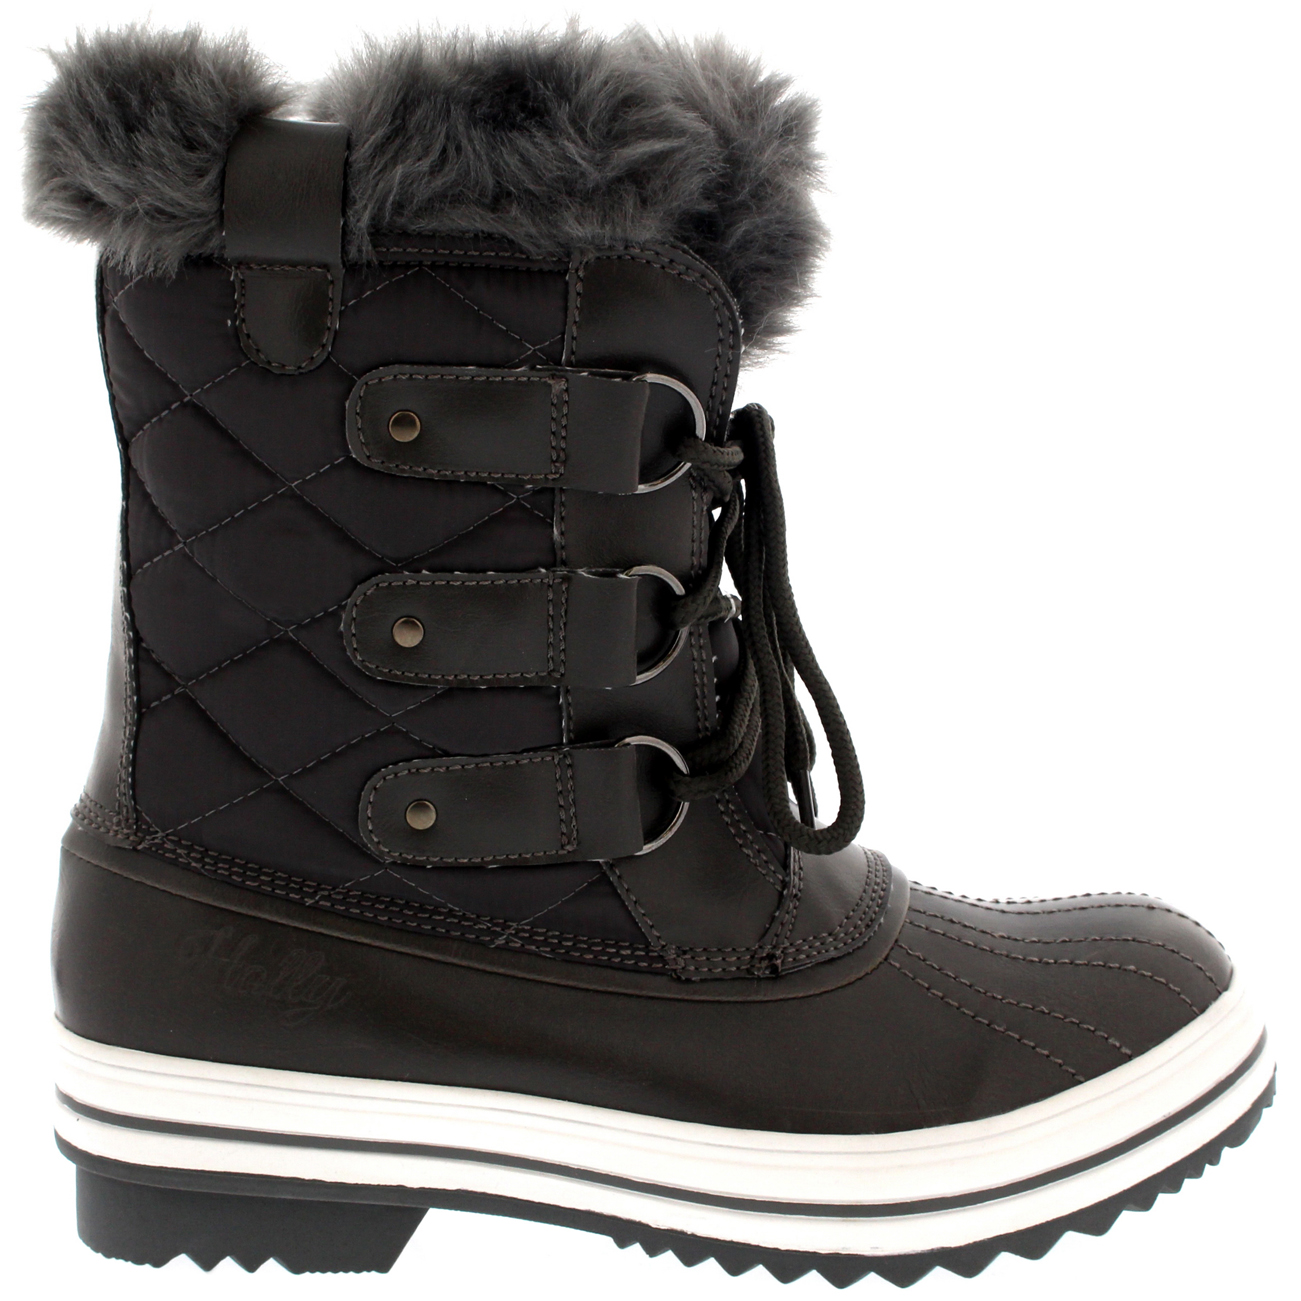 Excellent BlackShinyWaterproofWinterSnowWarmWomensBoots